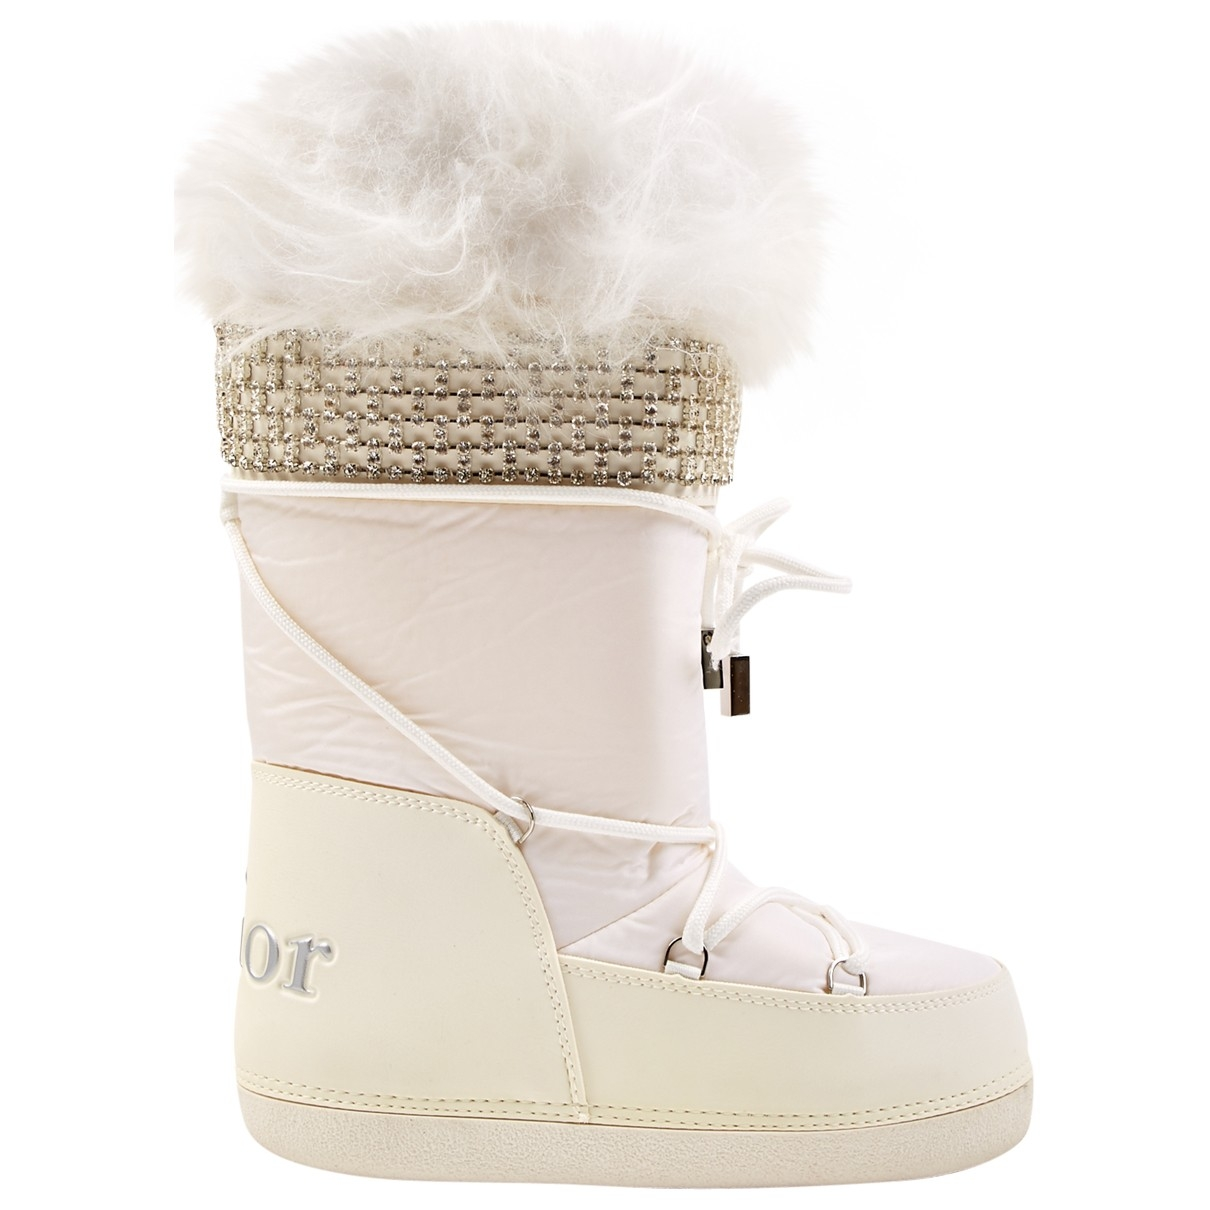 Dior \N White Leather Boots for Women 36 EU